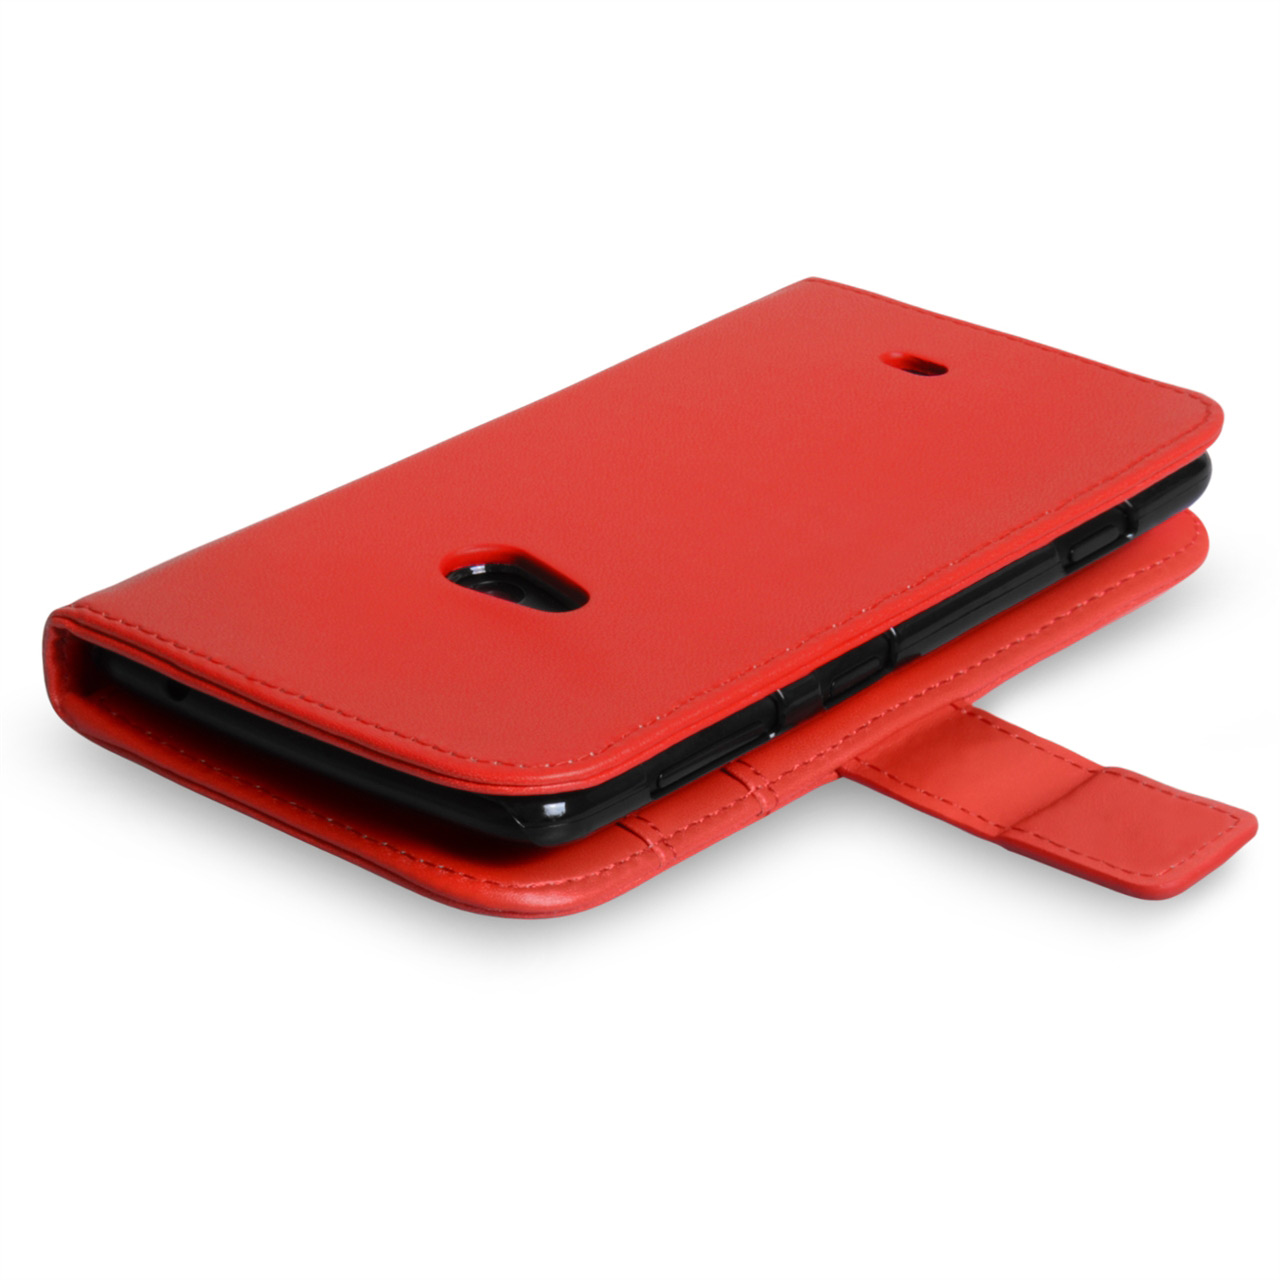 YouSave Accessories Nokia Lumia 625 Leather Effect Wallet Case - Red